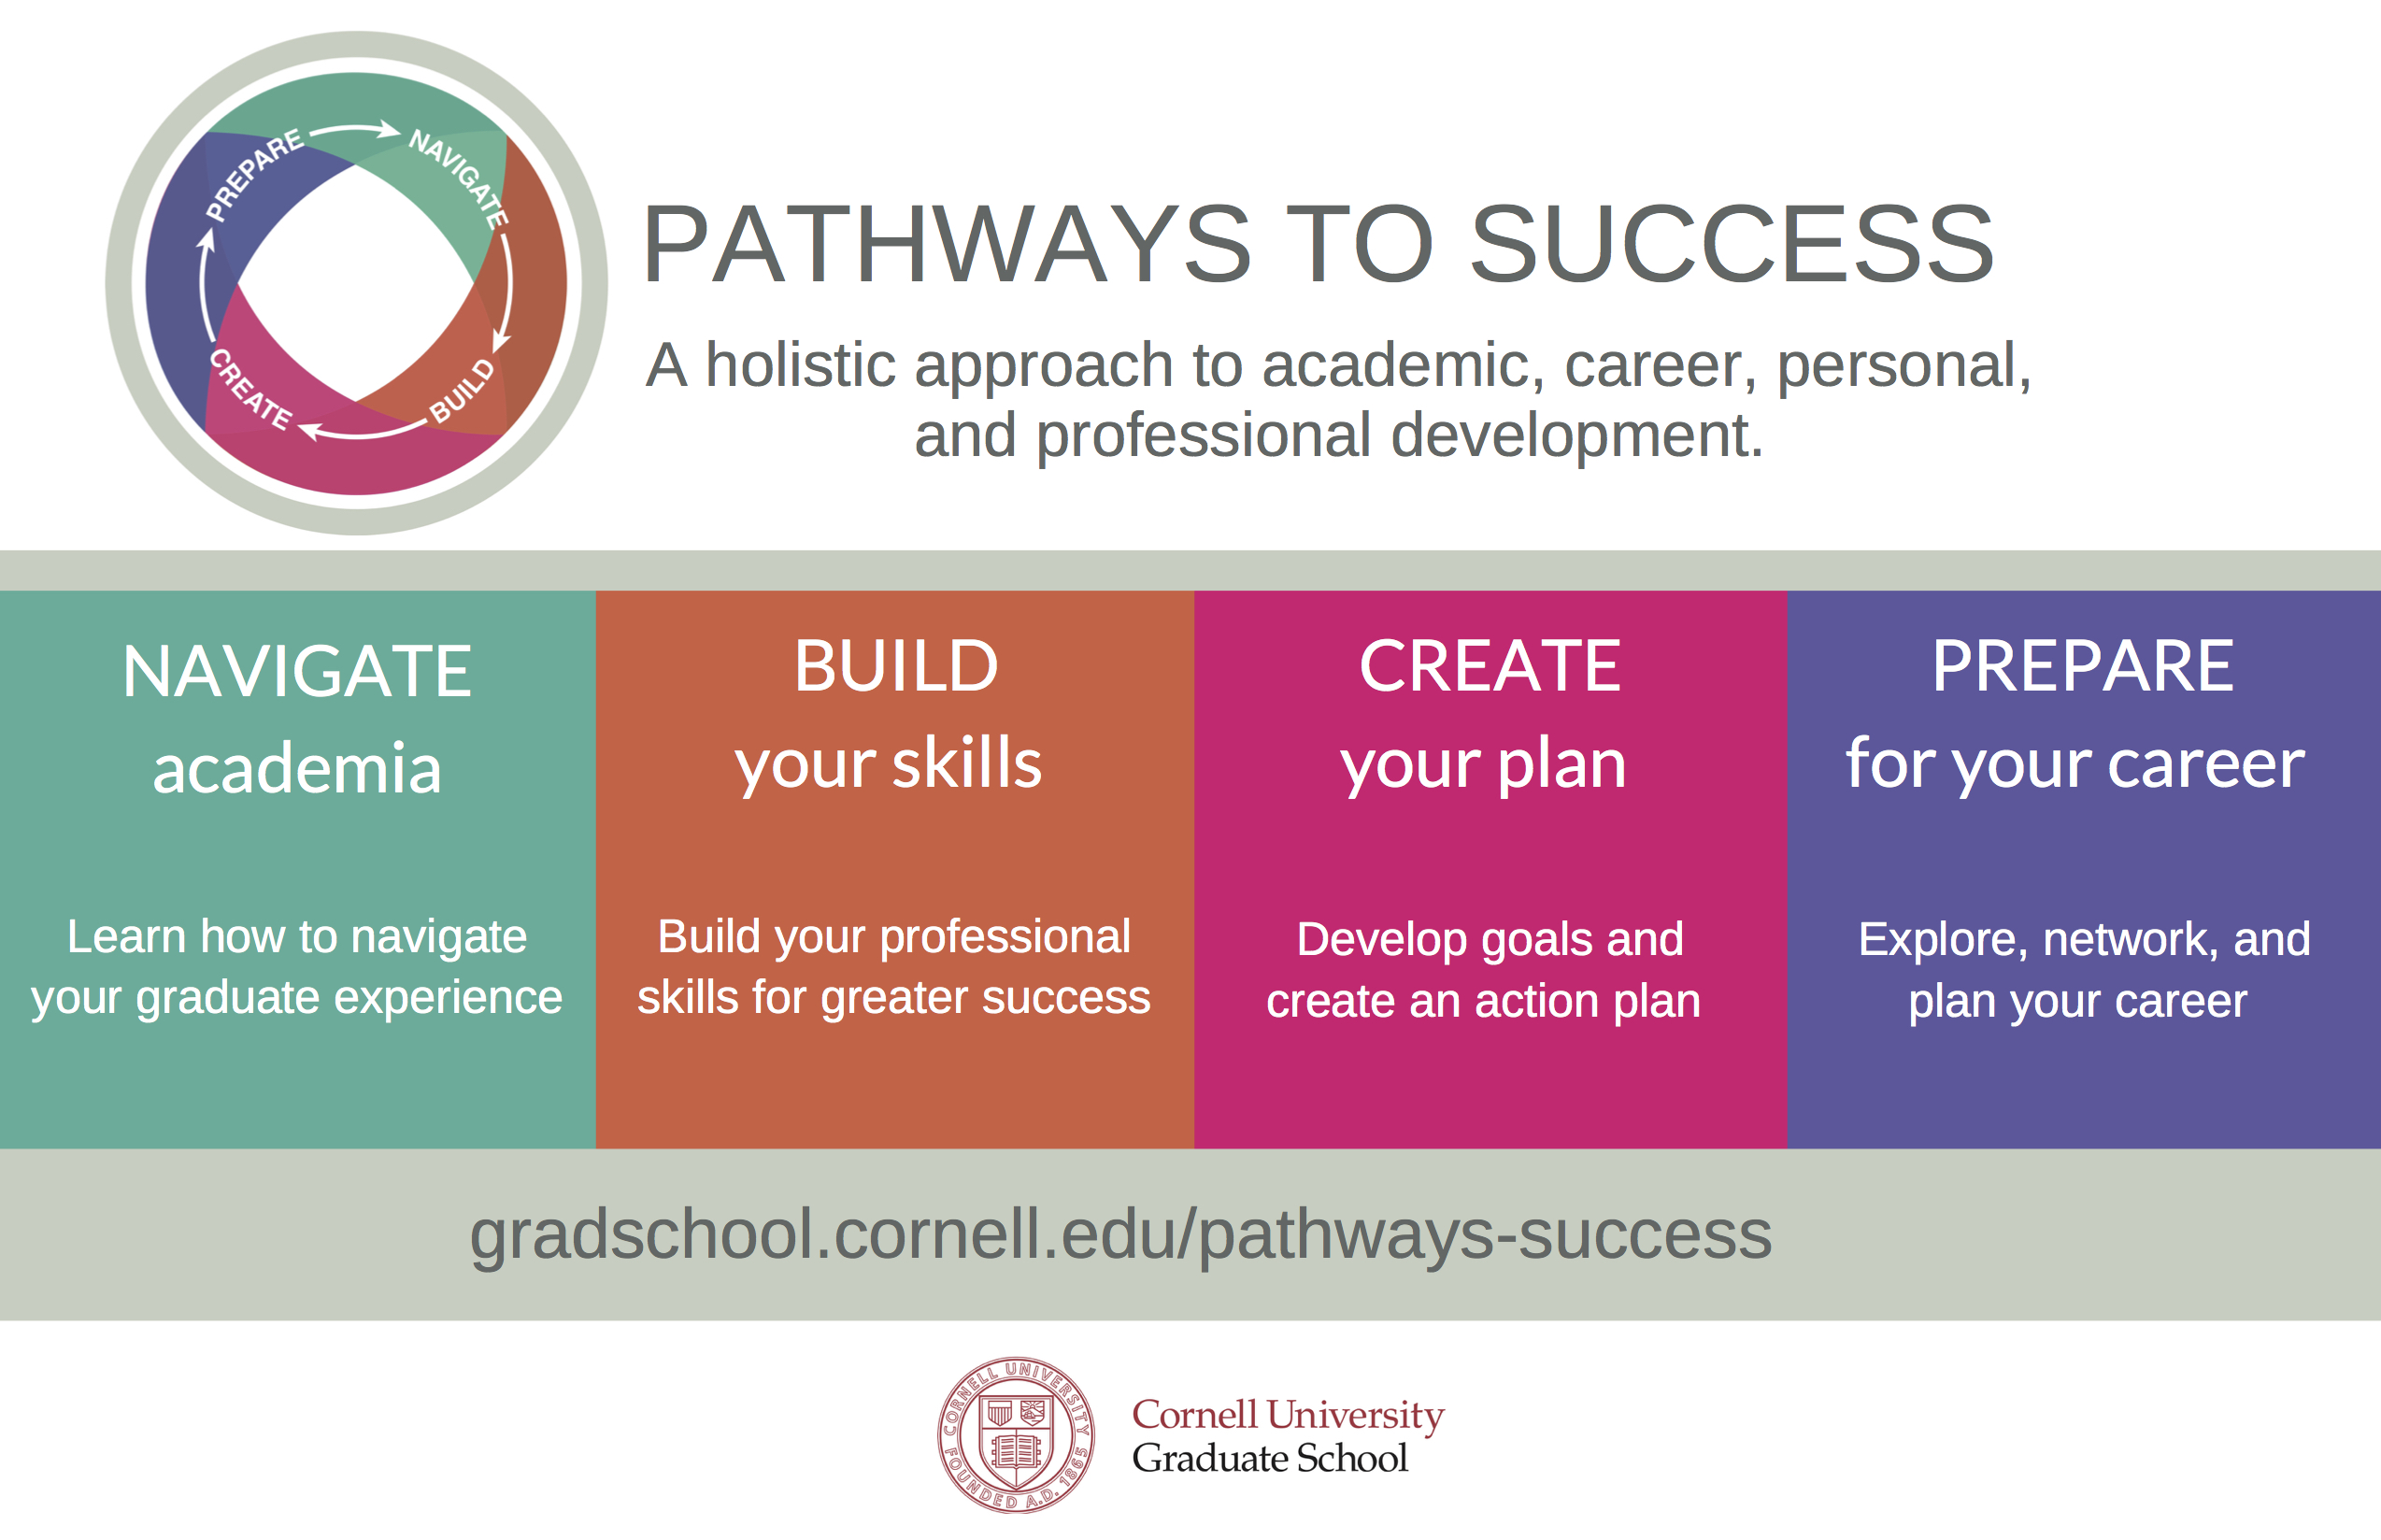 Pathways to Success: A holistic approach to academic, career, personal, and professional development. Navigate academia: Learn how to navigate your graduate experience. Build your skills: Build your professional skills for greater success. Create your plan: Develop goals and create an action plan. Prepare for your future: Explore, network, and plan your career.